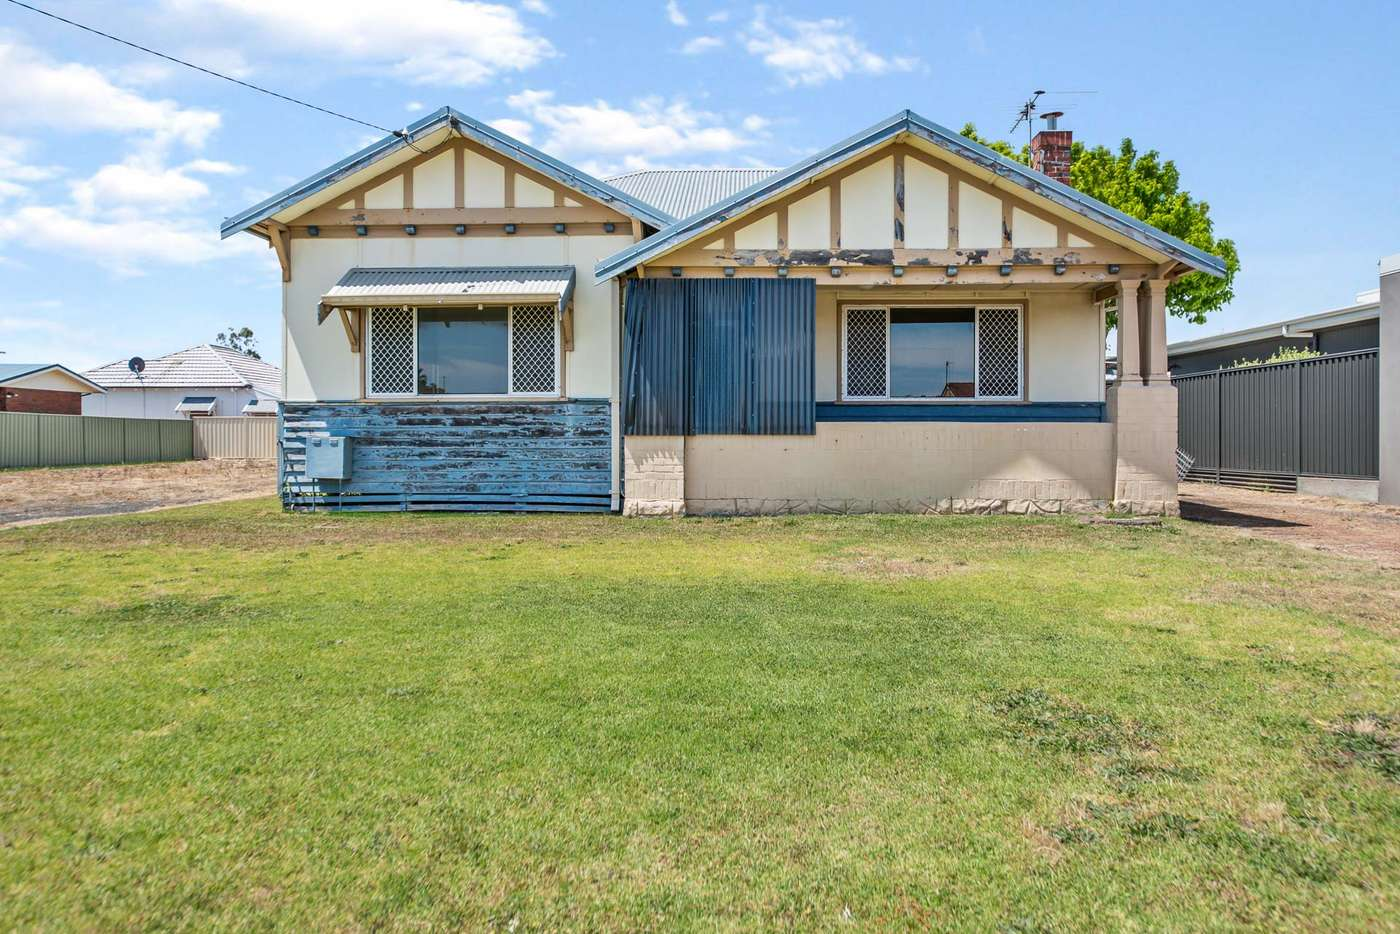 Main view of Homely house listing, 189 Spencer Street, South Bunbury, WA 6230